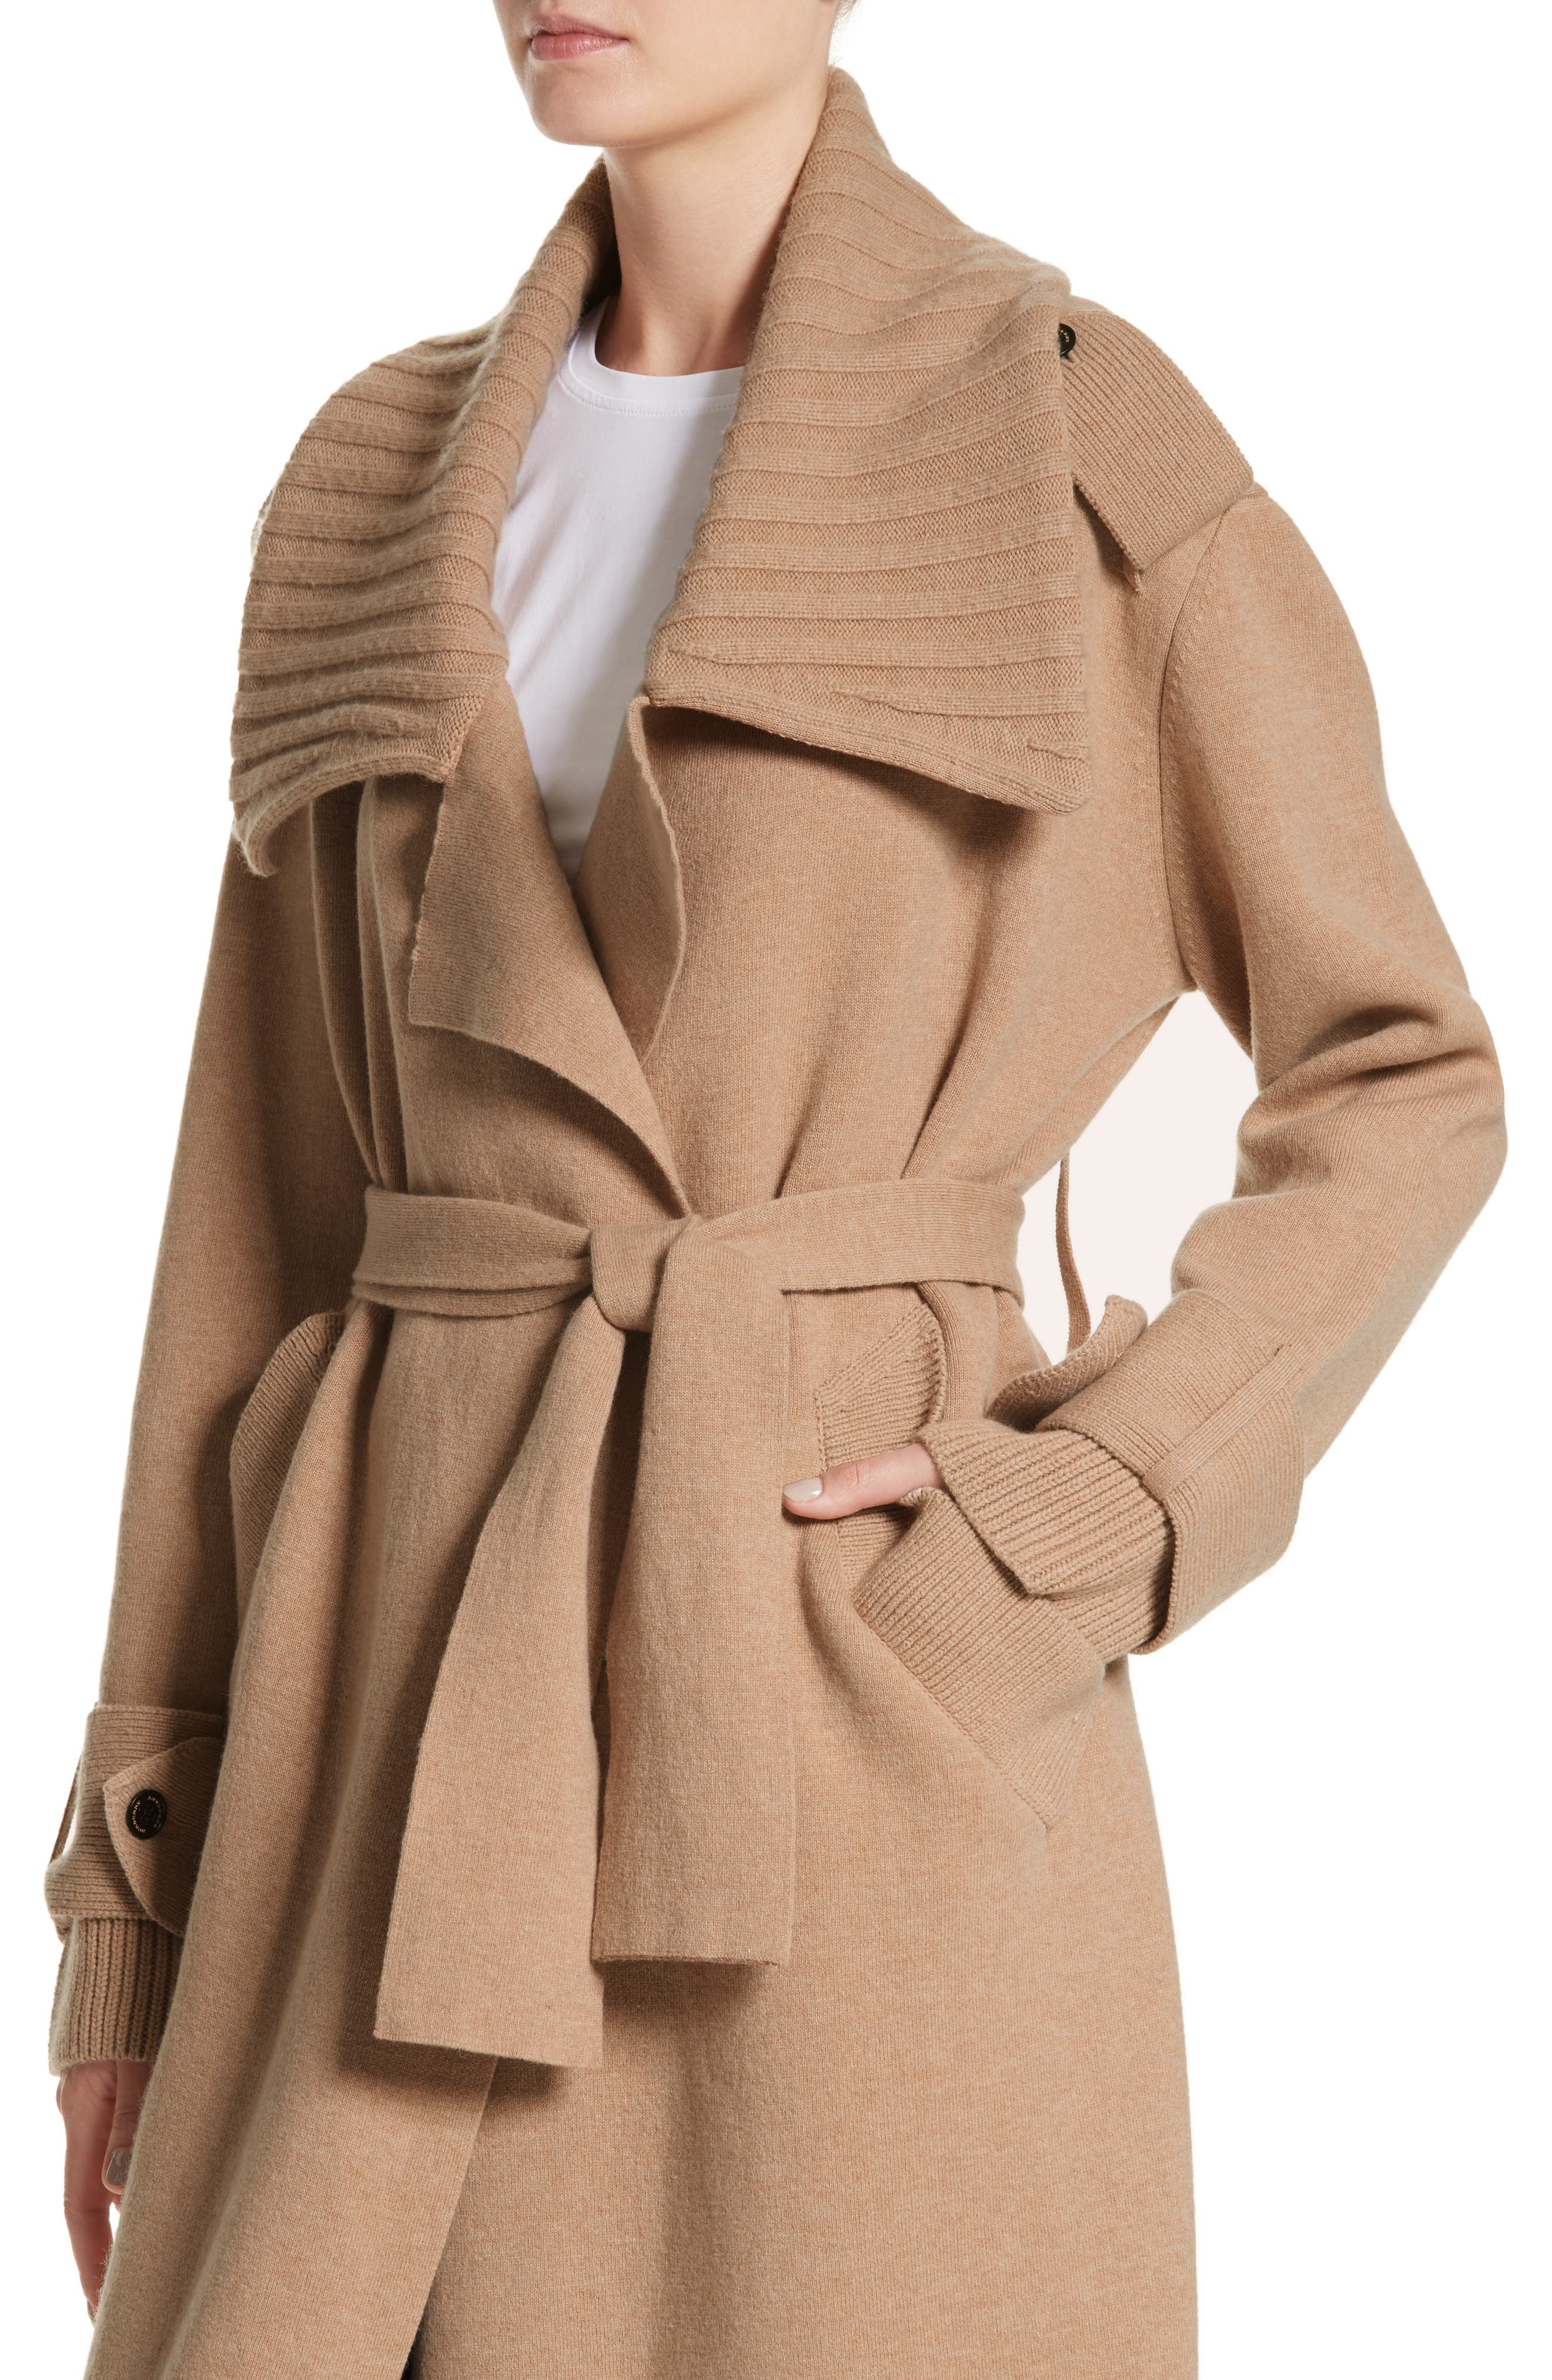 BURBERRY, Piota Wool Blend Knit Trench Coat, Alternate thumbnail 5, color, CAMEL